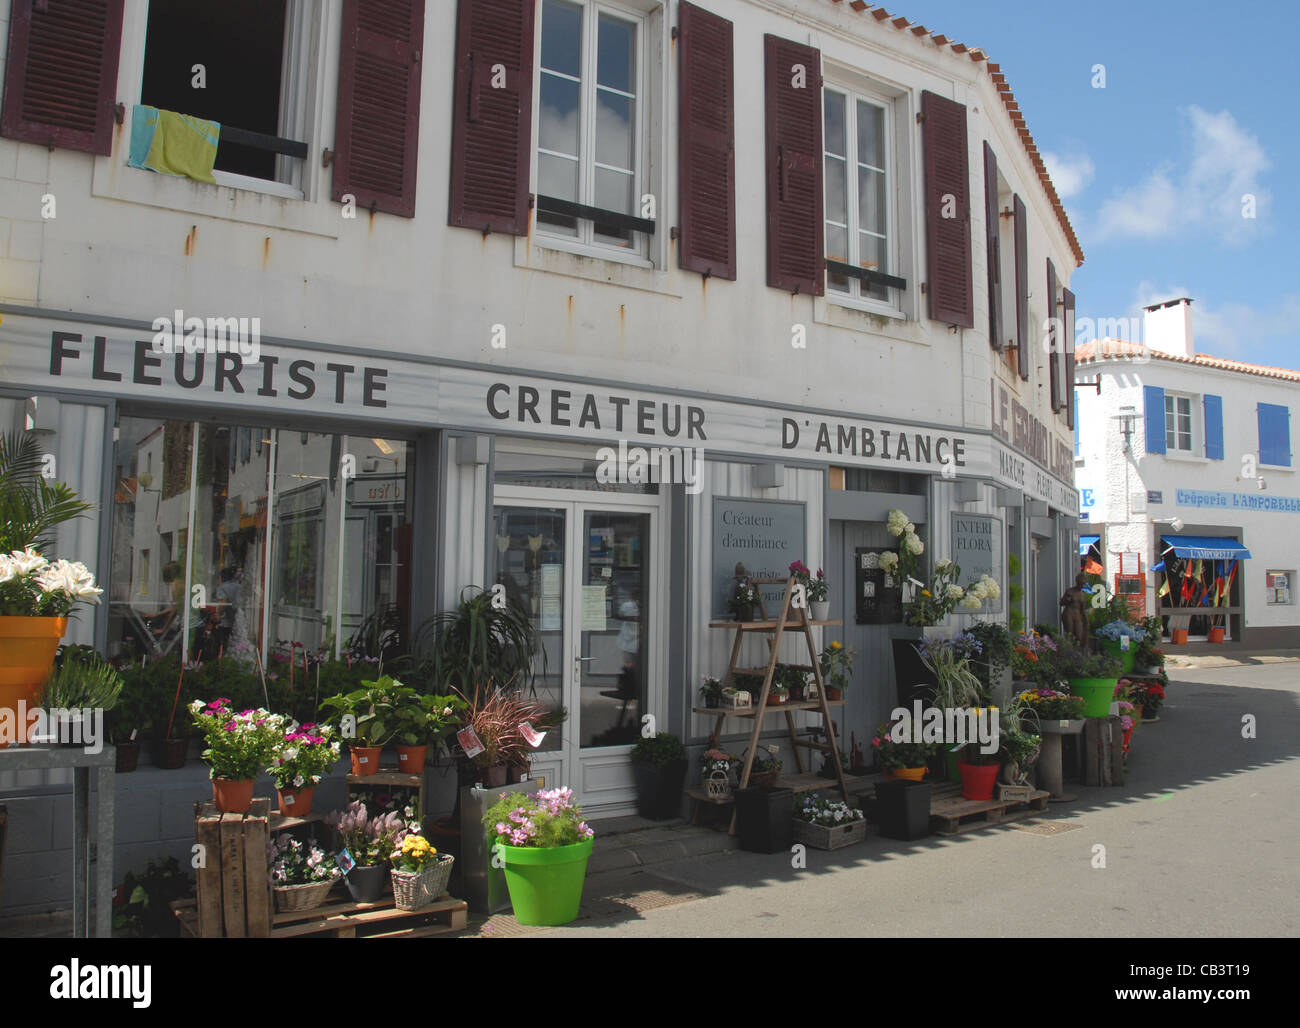 Flower shop in the old centre of the port town Port Joinville on the Atlantic island Île d'Yeu in Vendée, - Stock Image